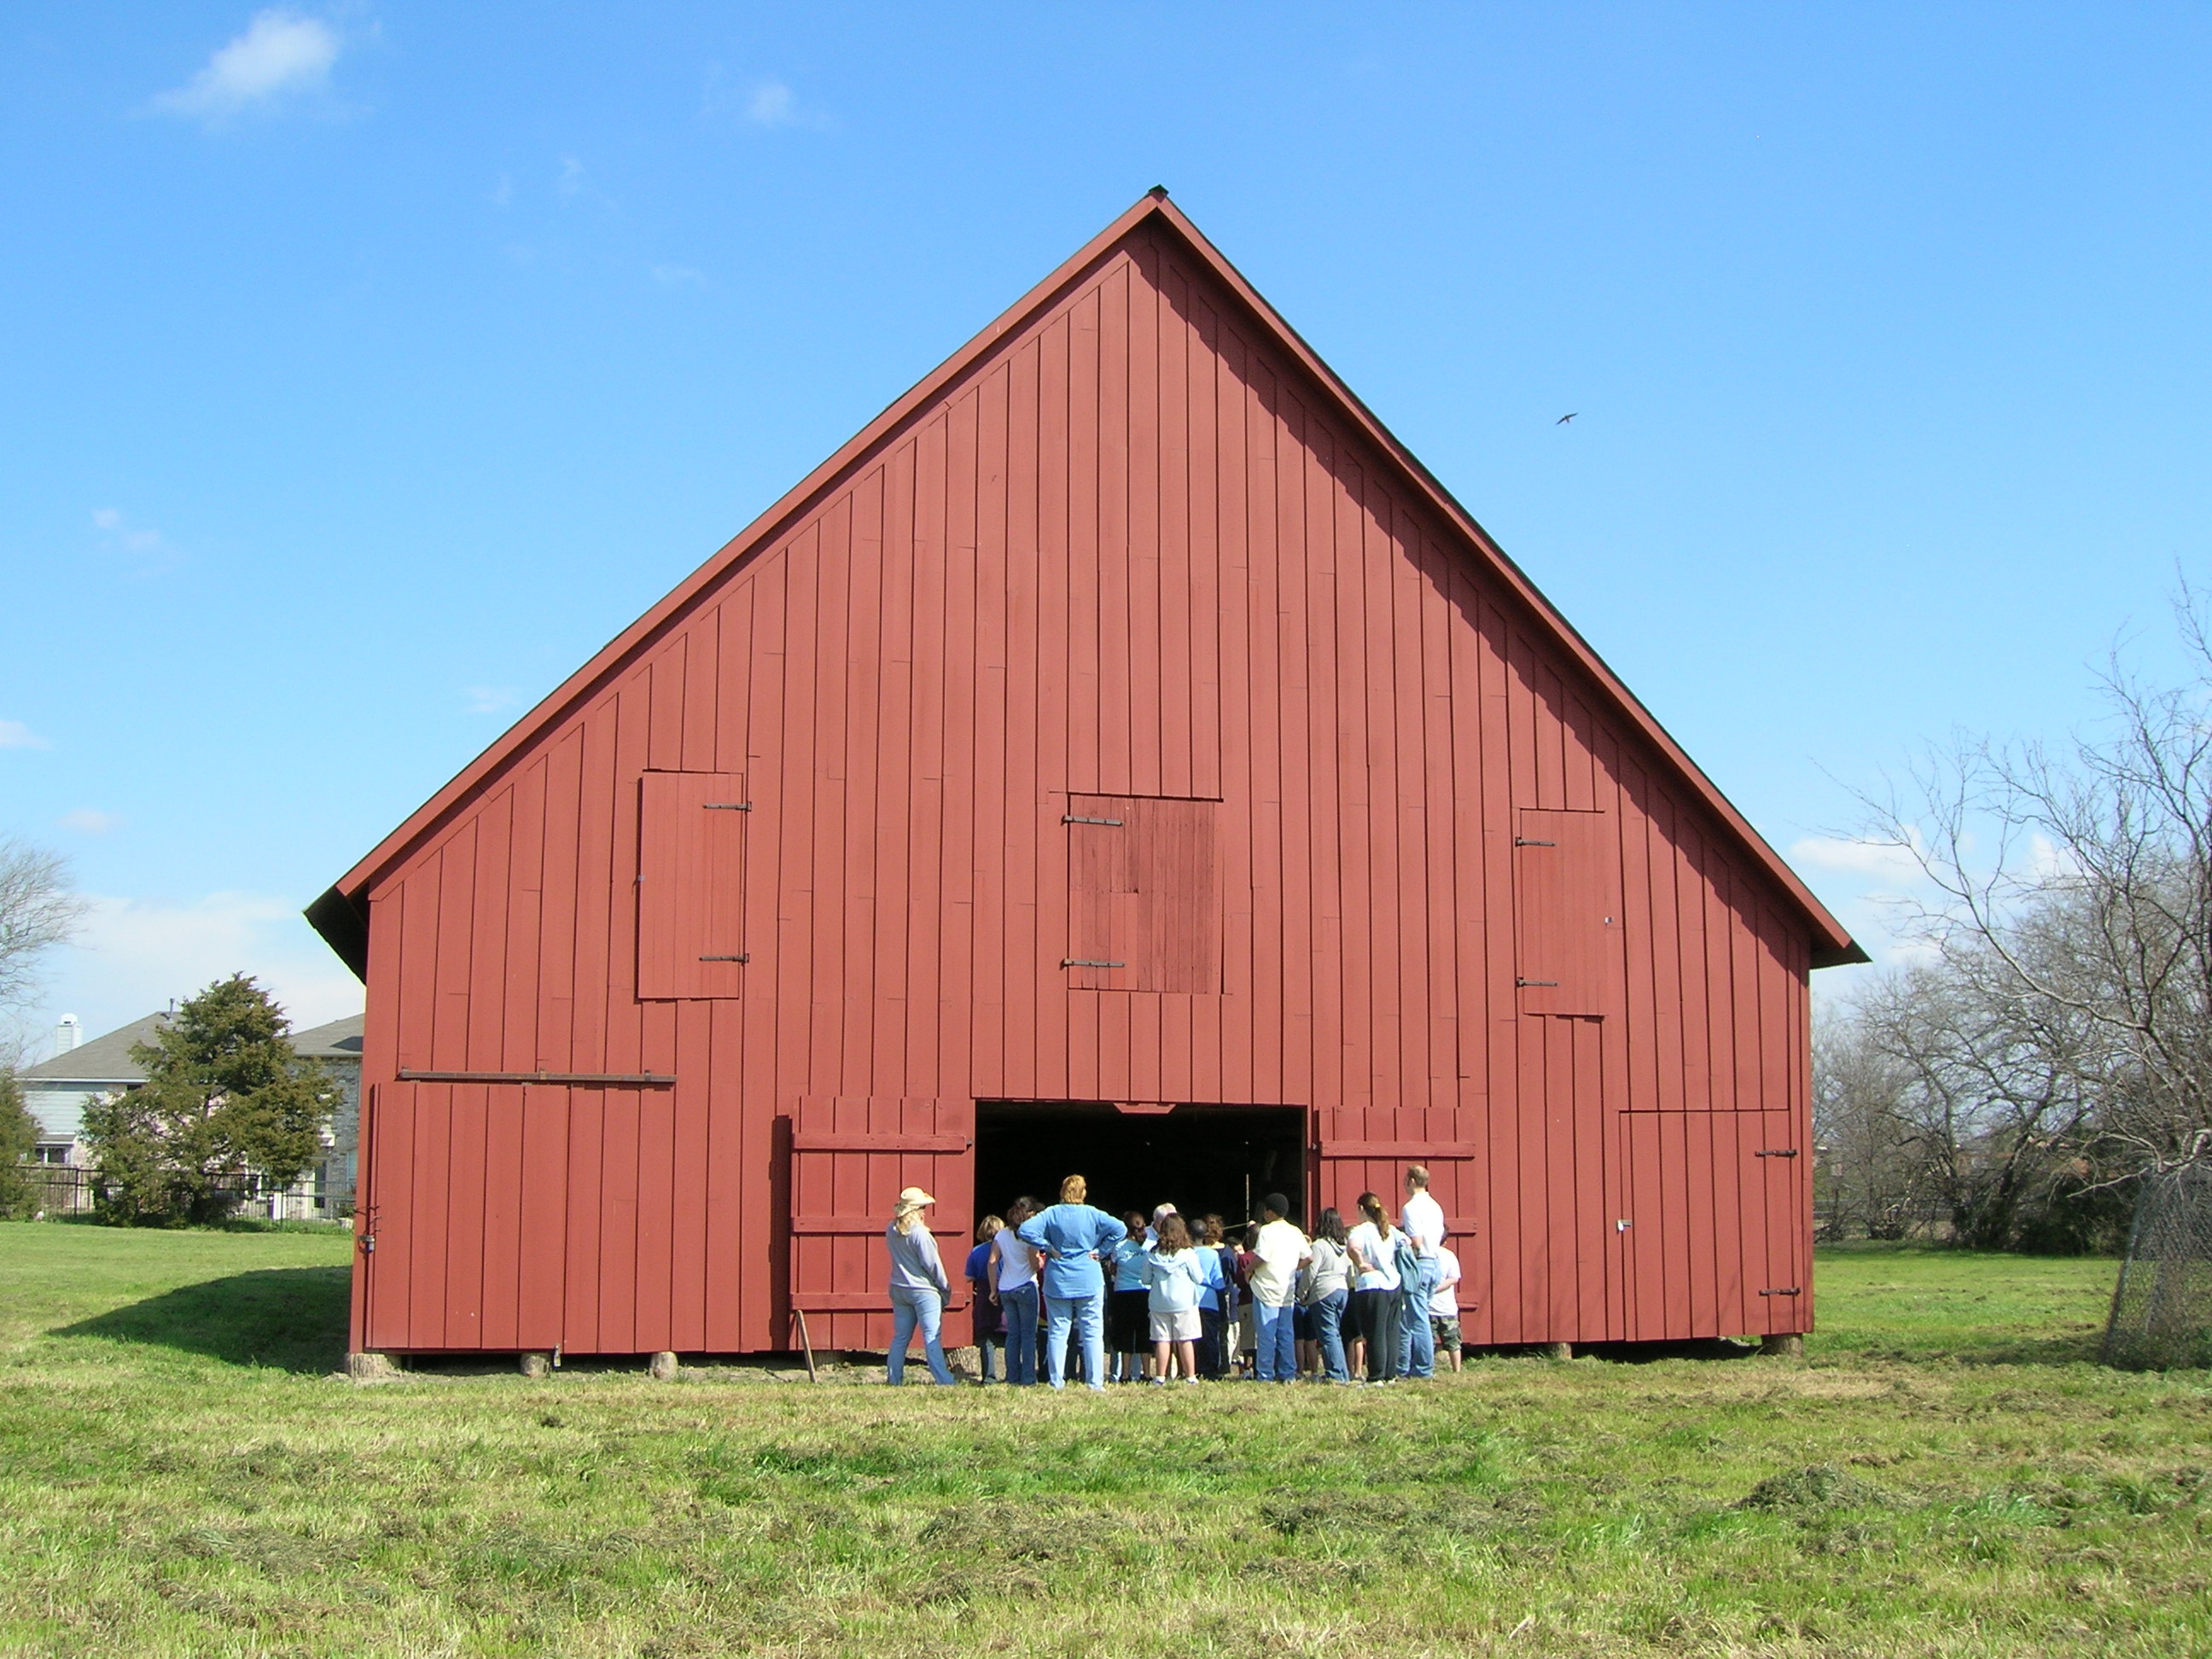 Mesquite red barn